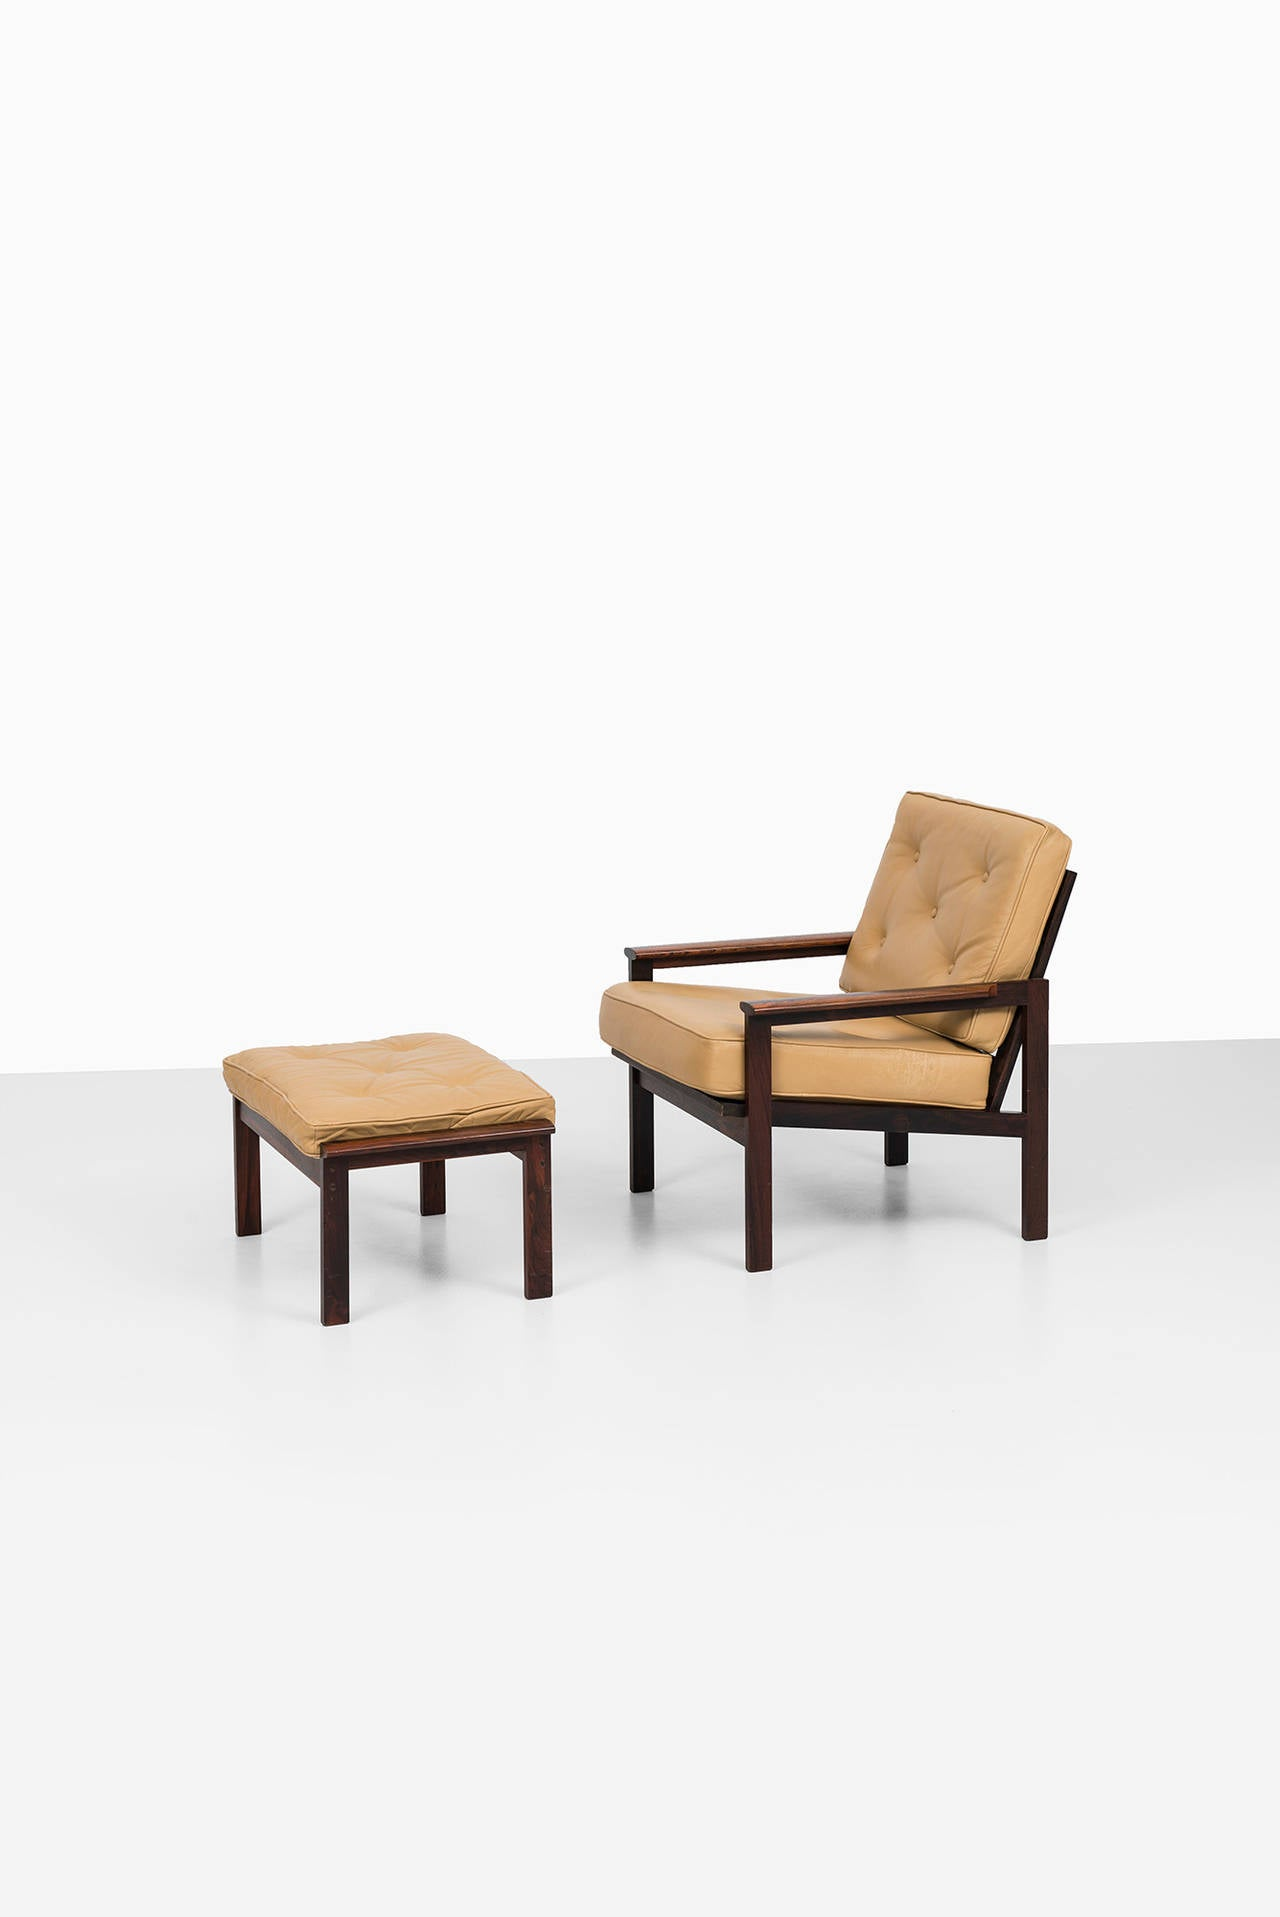 illum wikkels capella easy chair with stool by niels eilersen in denmark